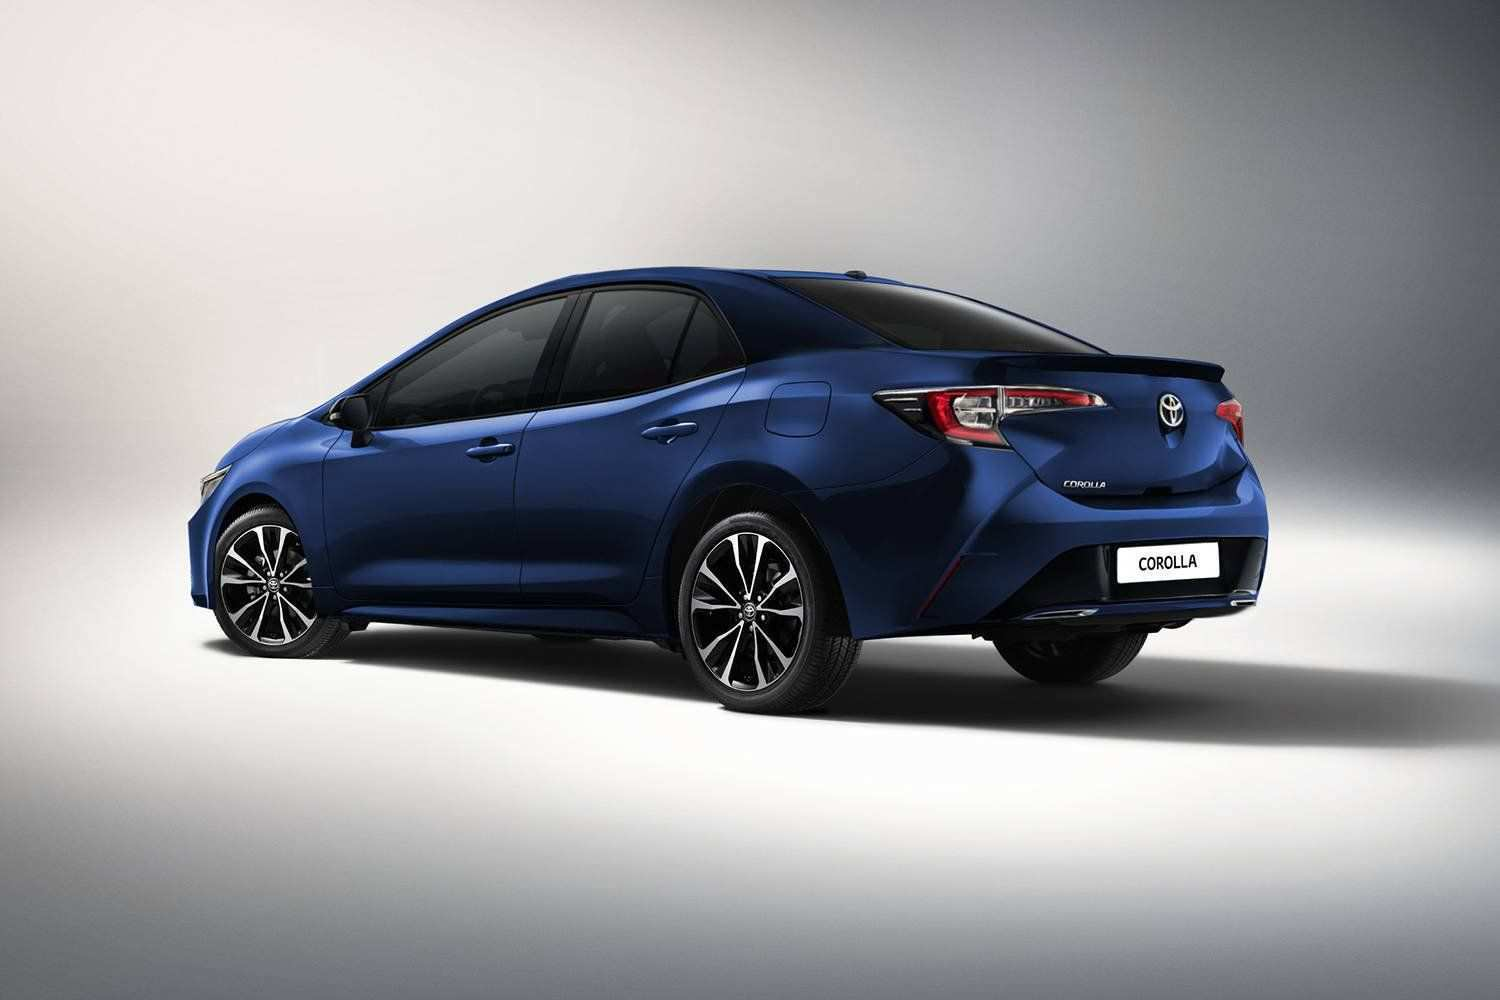 70 Great Toyota Corolla 2020 Exterior In Pakistan Specs for Toyota Corolla 2020 Exterior In Pakistan